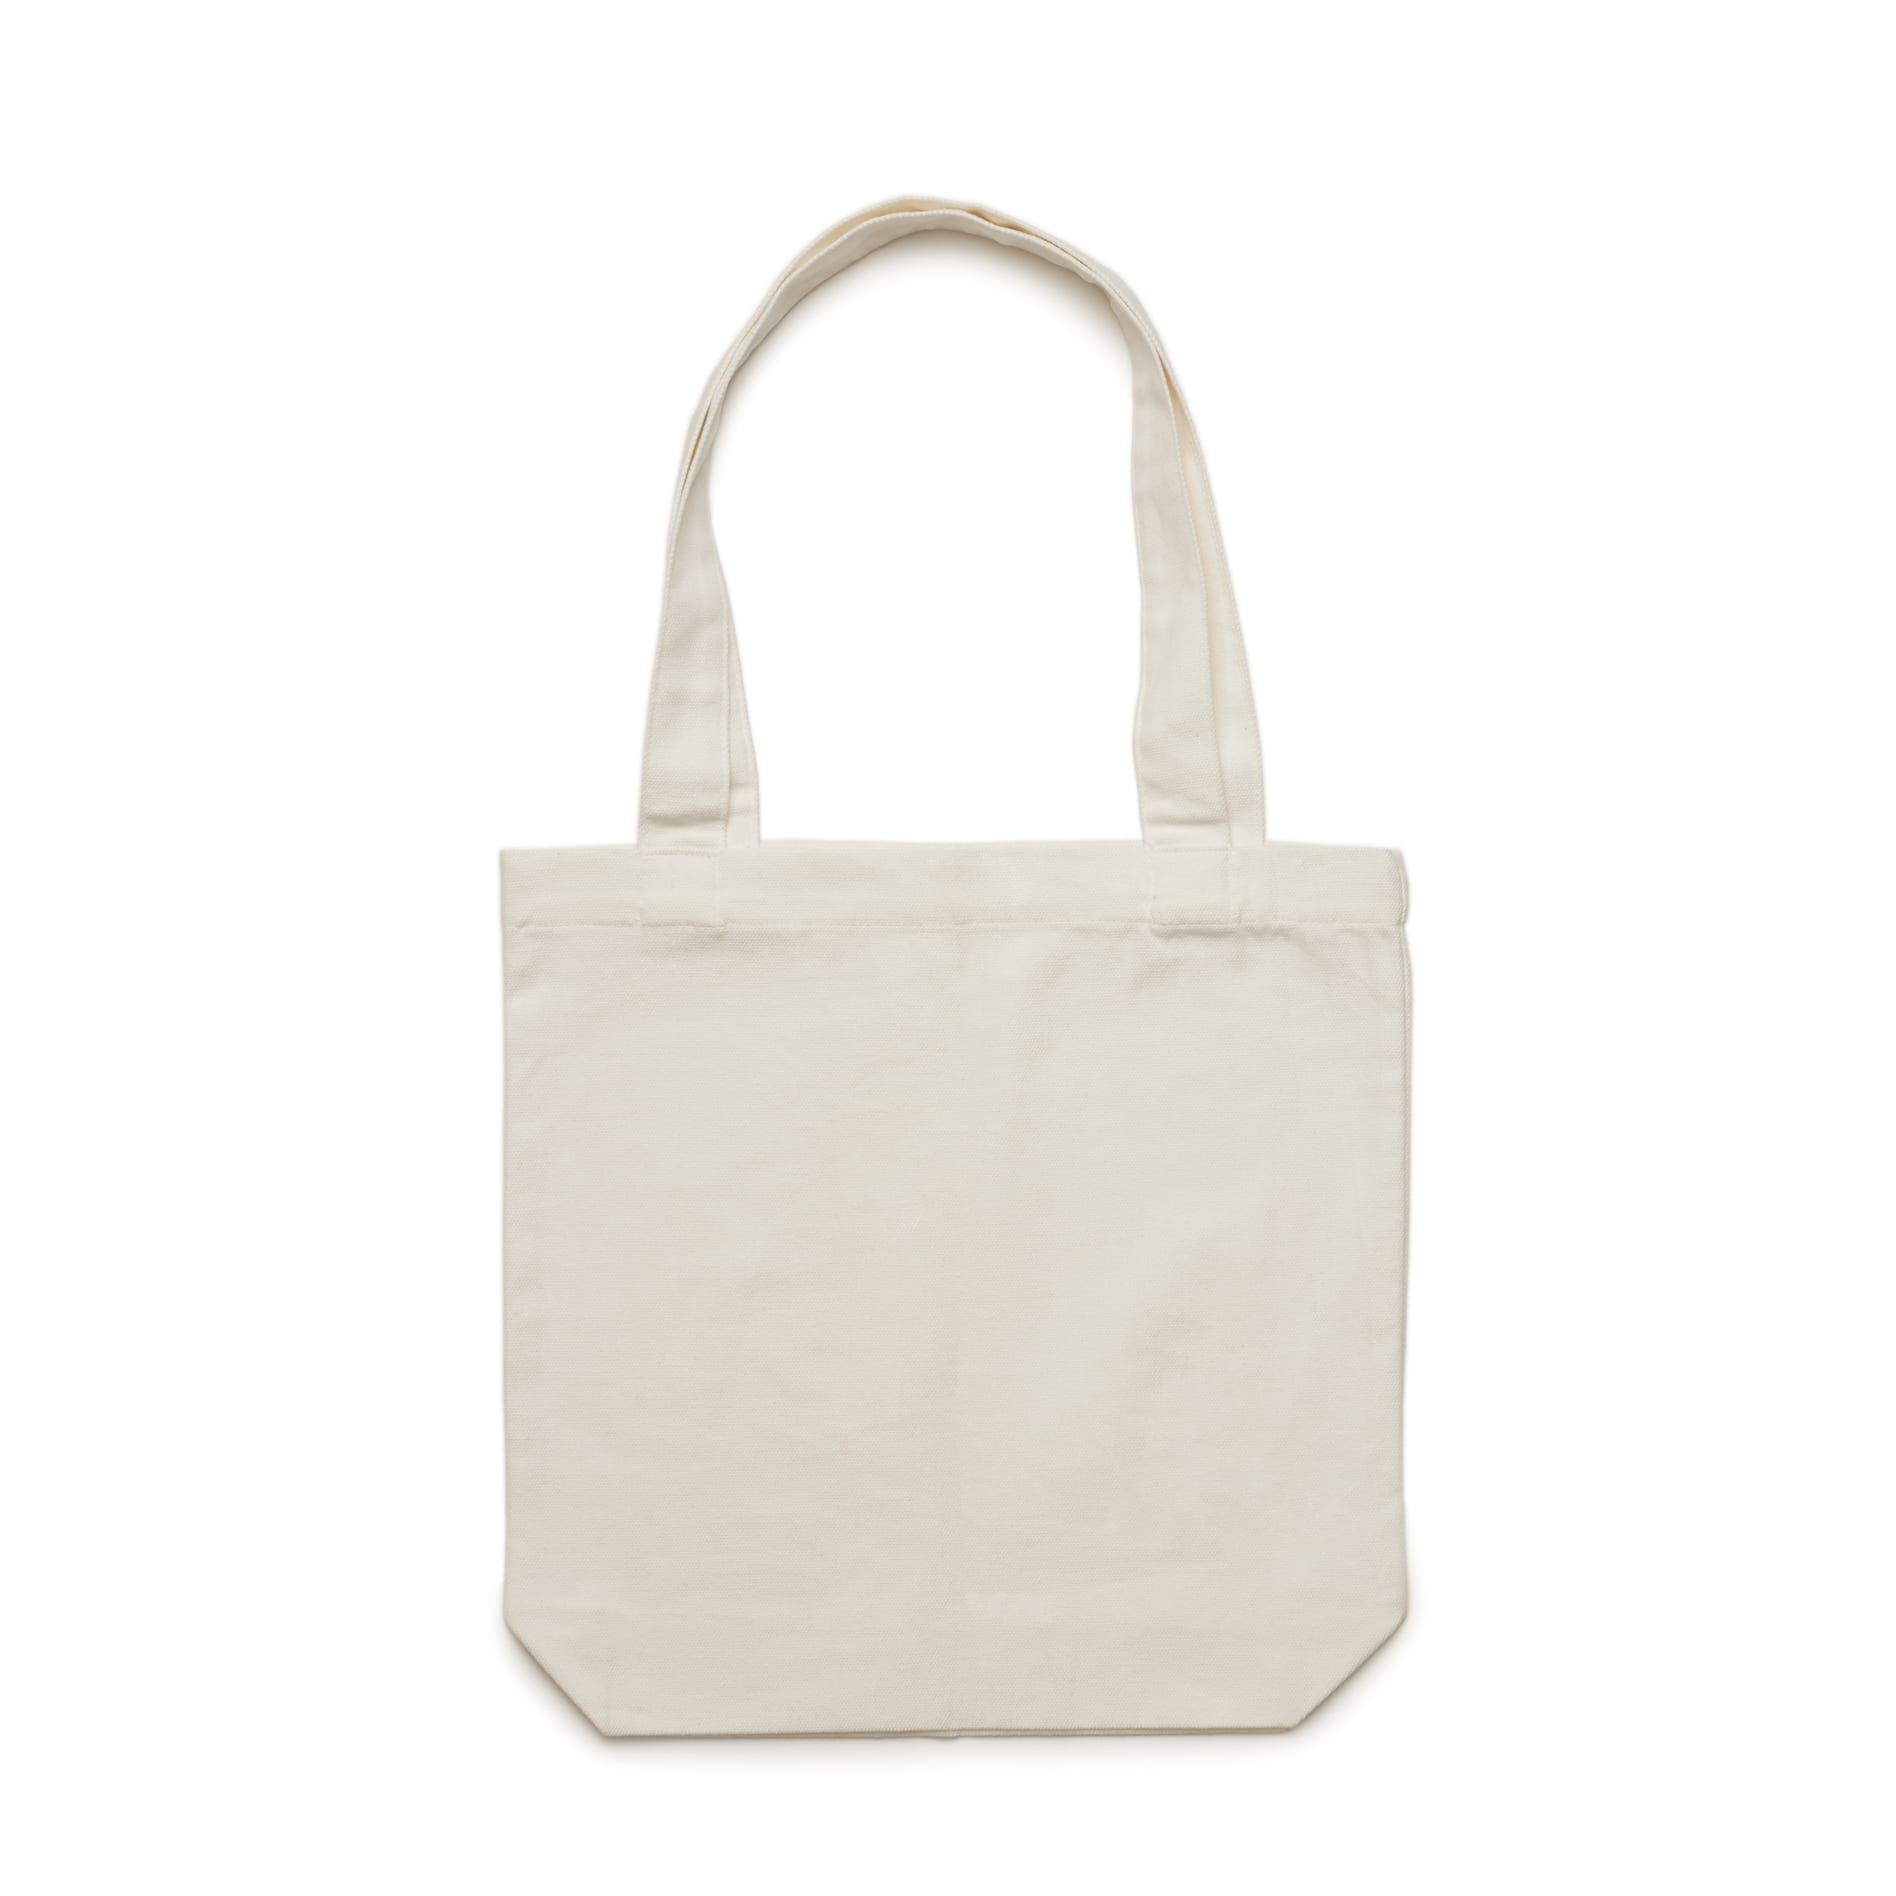 AS 1001 Carrie Tote